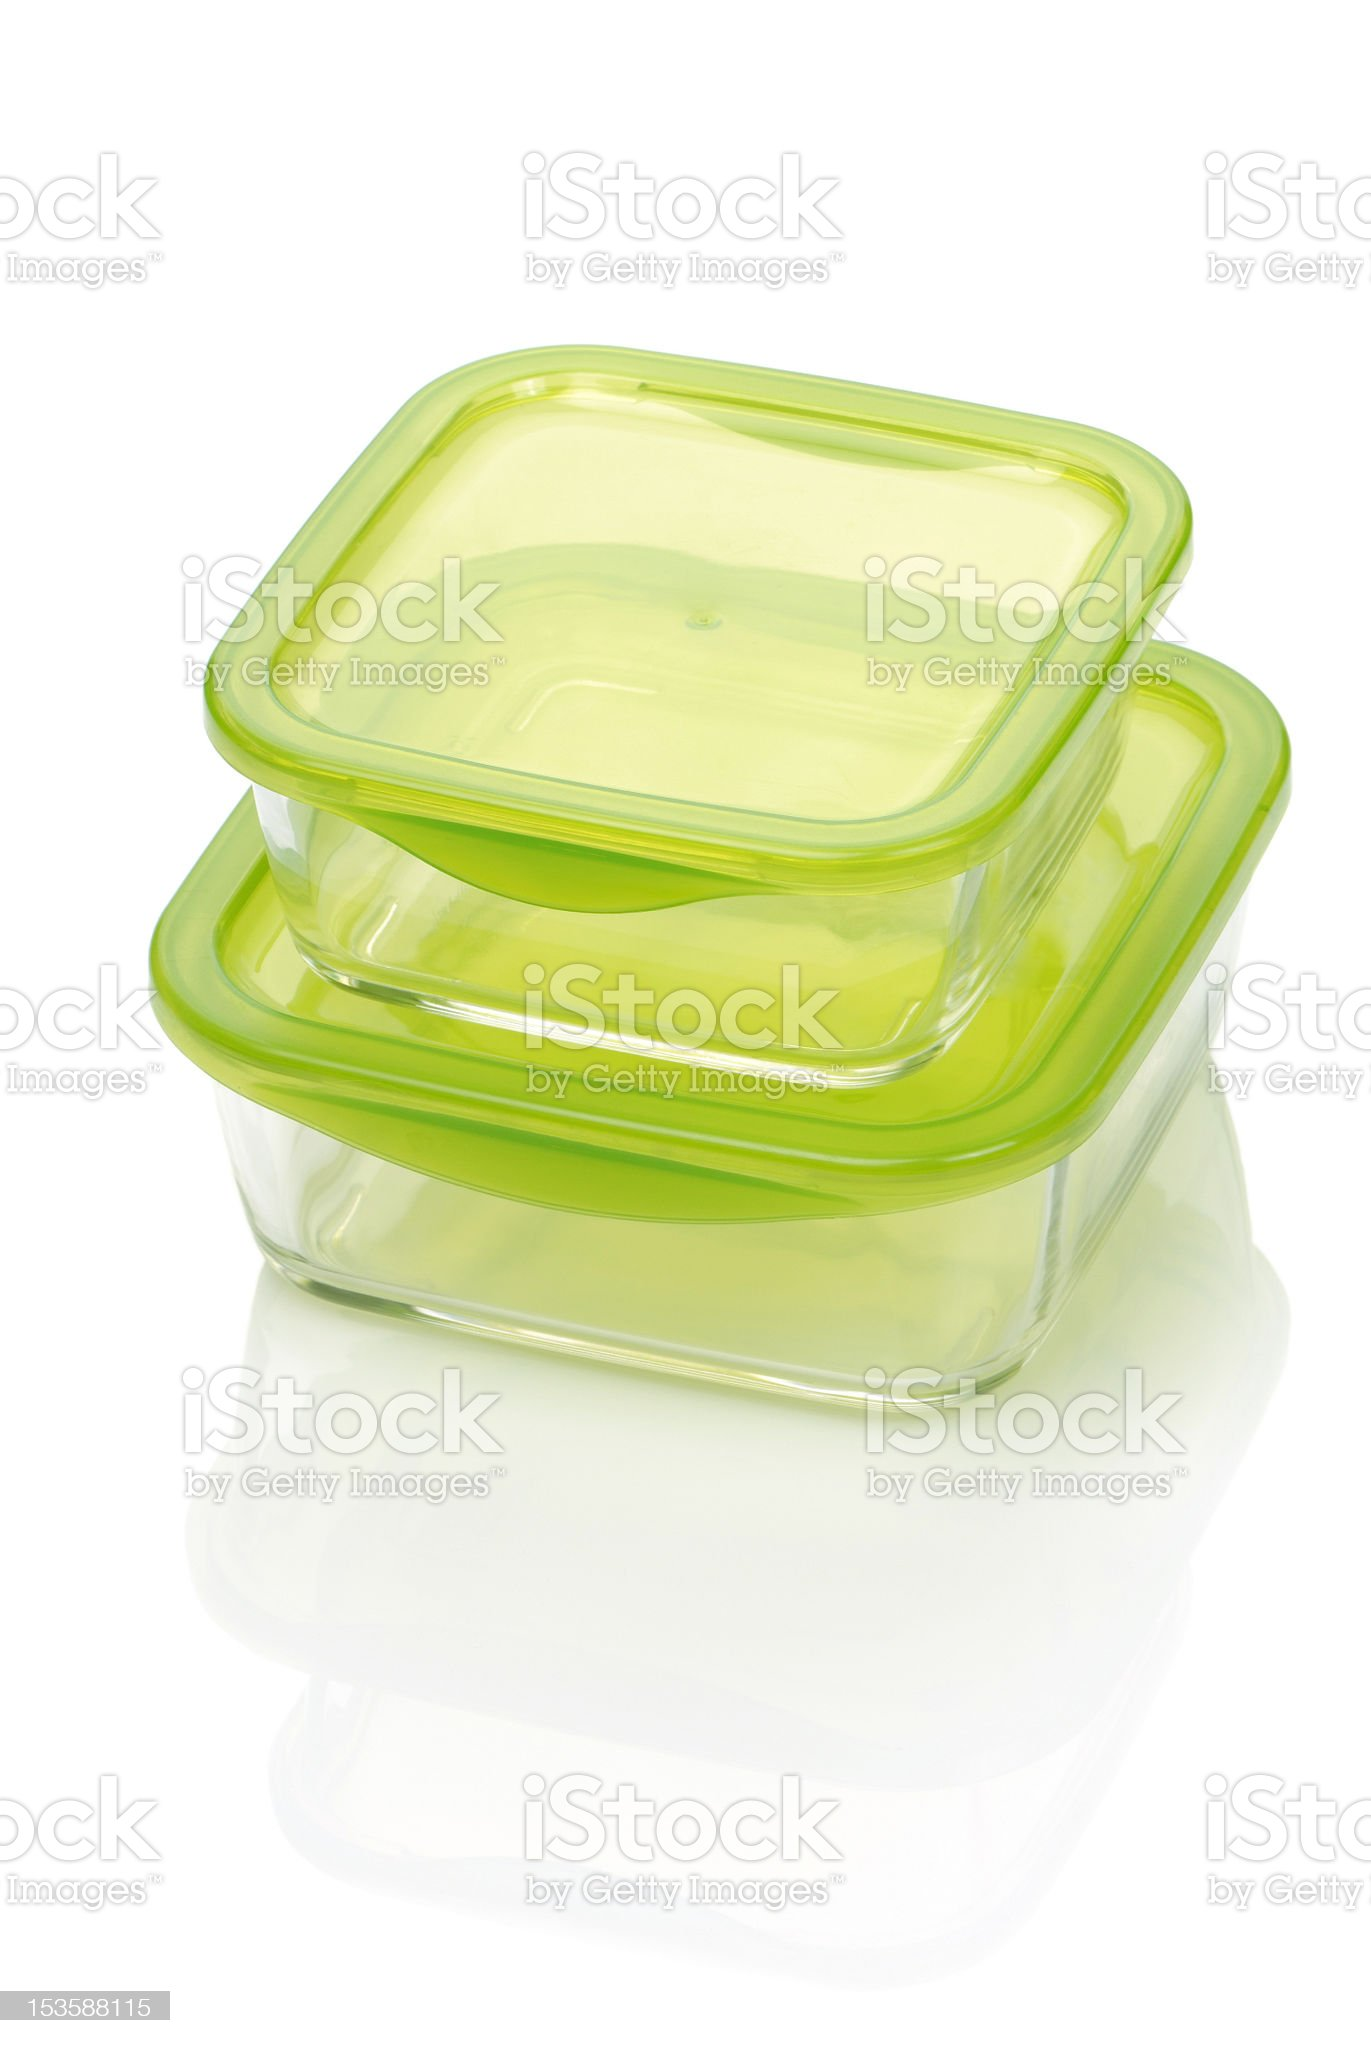 two glass food container royalty-free stock photo